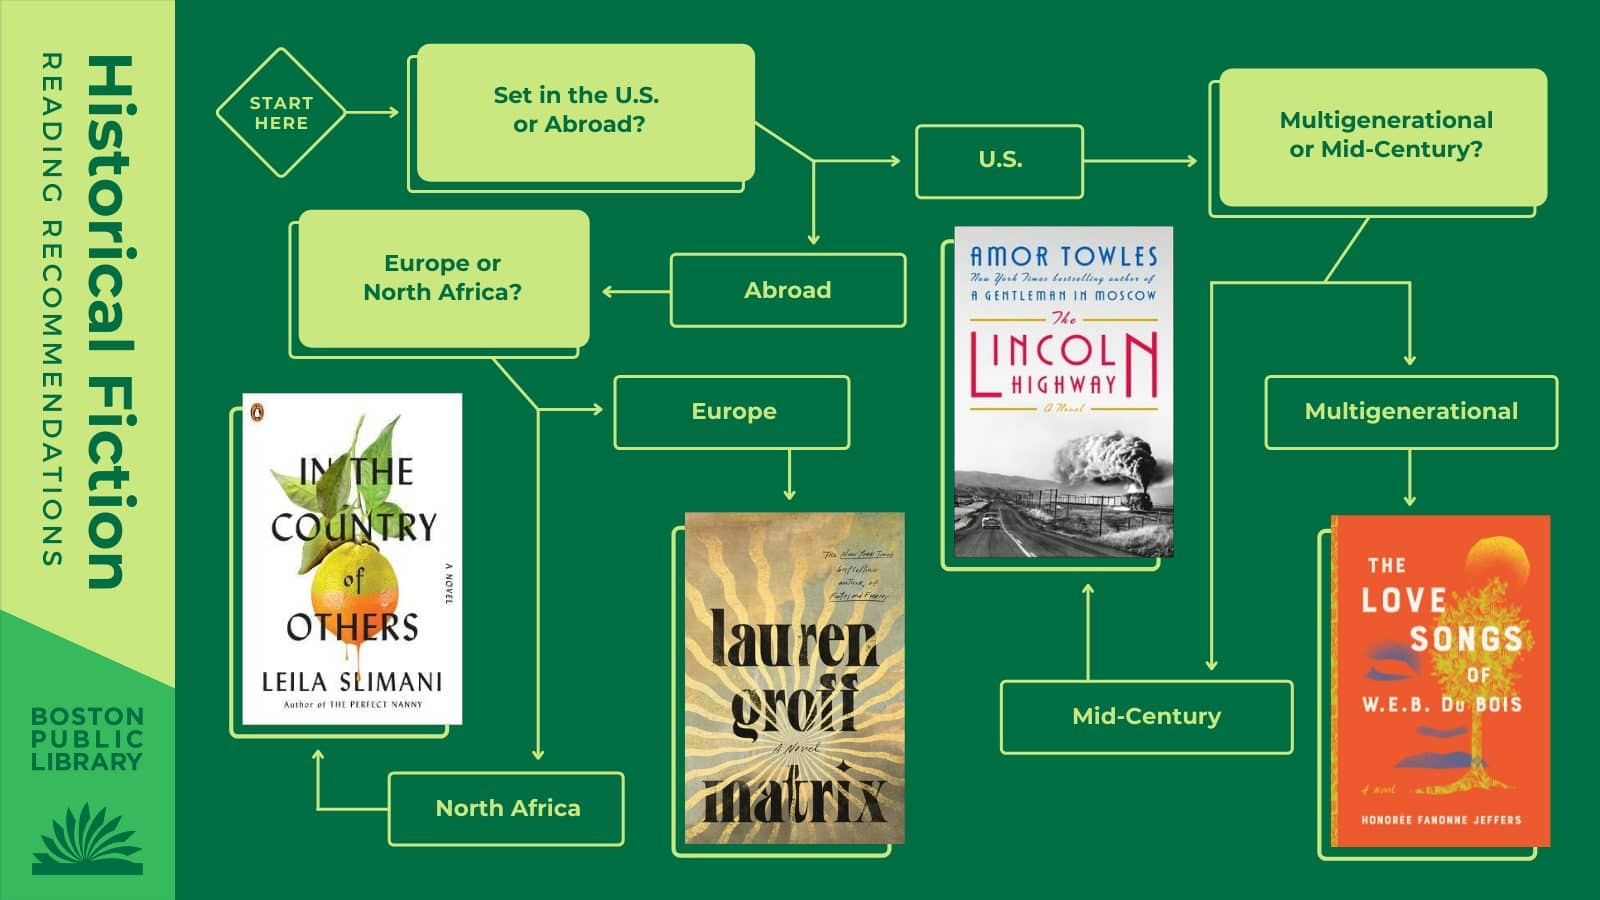 Q1: Set In the United States or Abroad?->United States->Q2: Multigenerational Saga or 1950s?→ Multigenerational Saga:The Love Songs of W.E.B. DuBoisby Honorée Fanonne Jeffers / 1950s: The Lincoln Highwayby Amor Towles | Abroad->Q3: Europe or North Africa?-> Europe:Matrixby Lauren Groff / North Africa:In the Country of Othersby Leila Slimani.